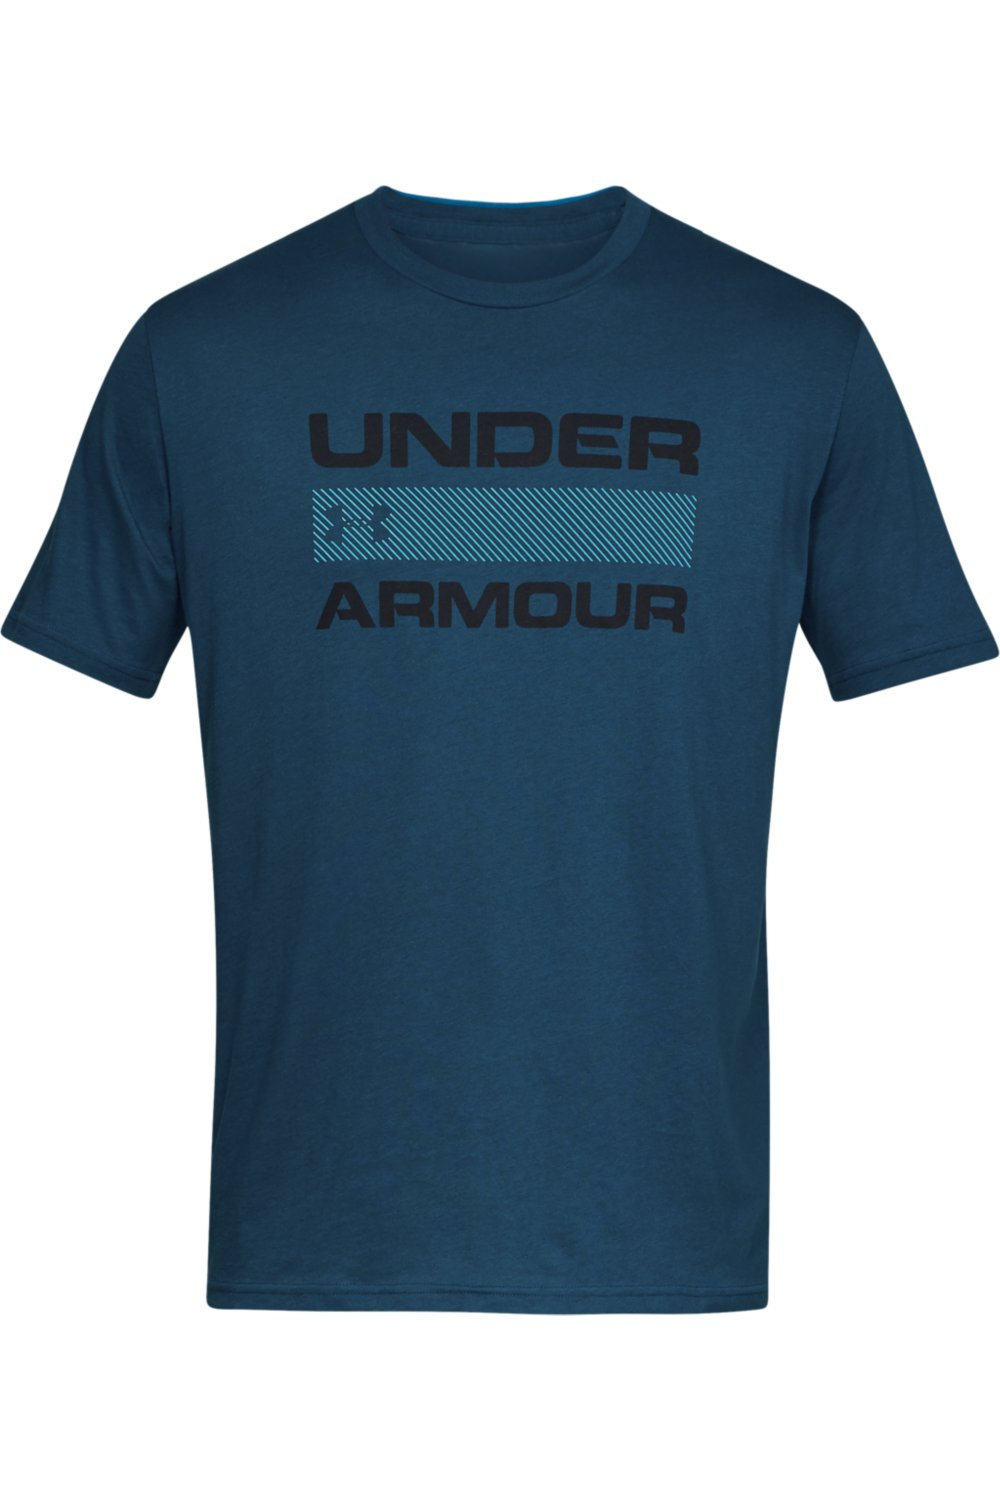 Under Armour сини мъжки риза Team Issue Wordmark Ss